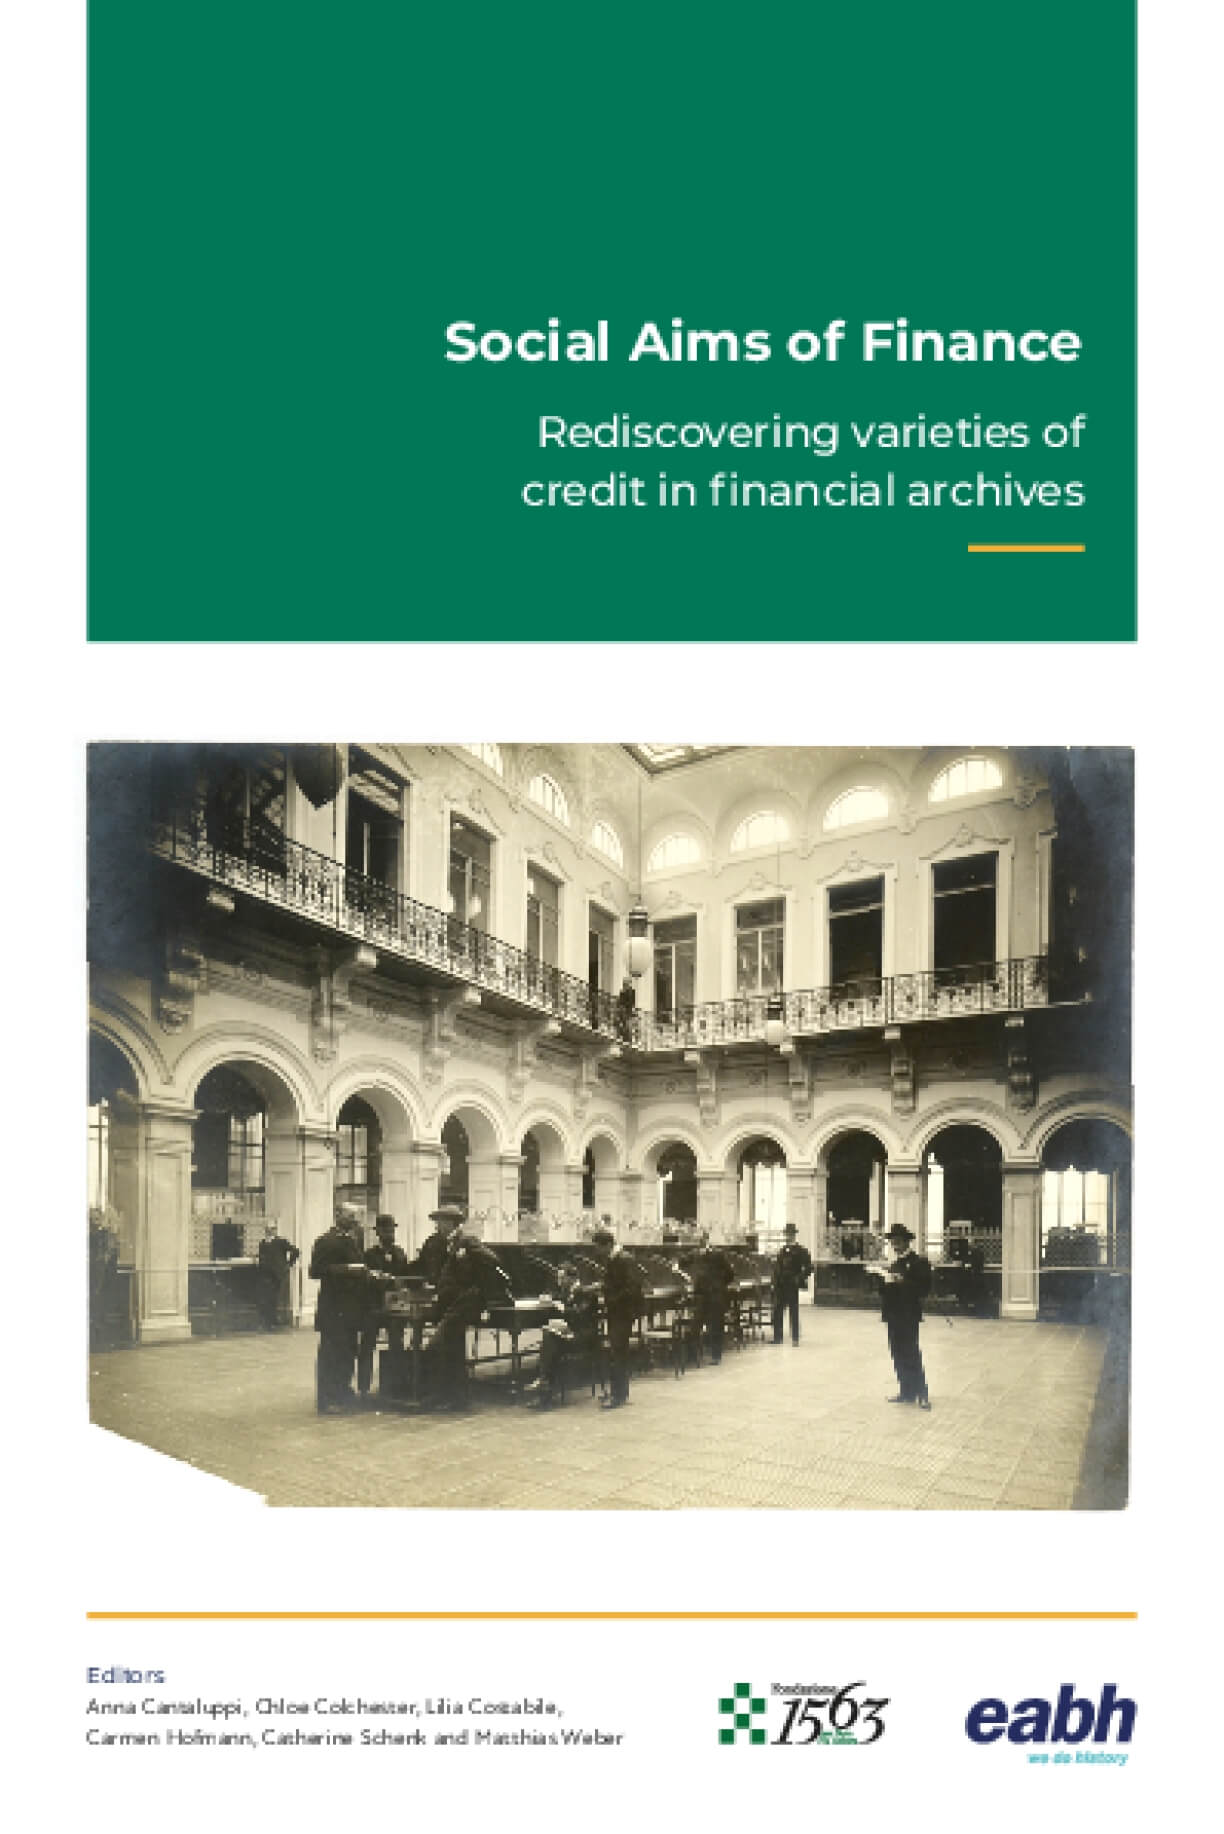 Social Aims of Finance: Rediscovering Varieties of Credit in Financial Archives